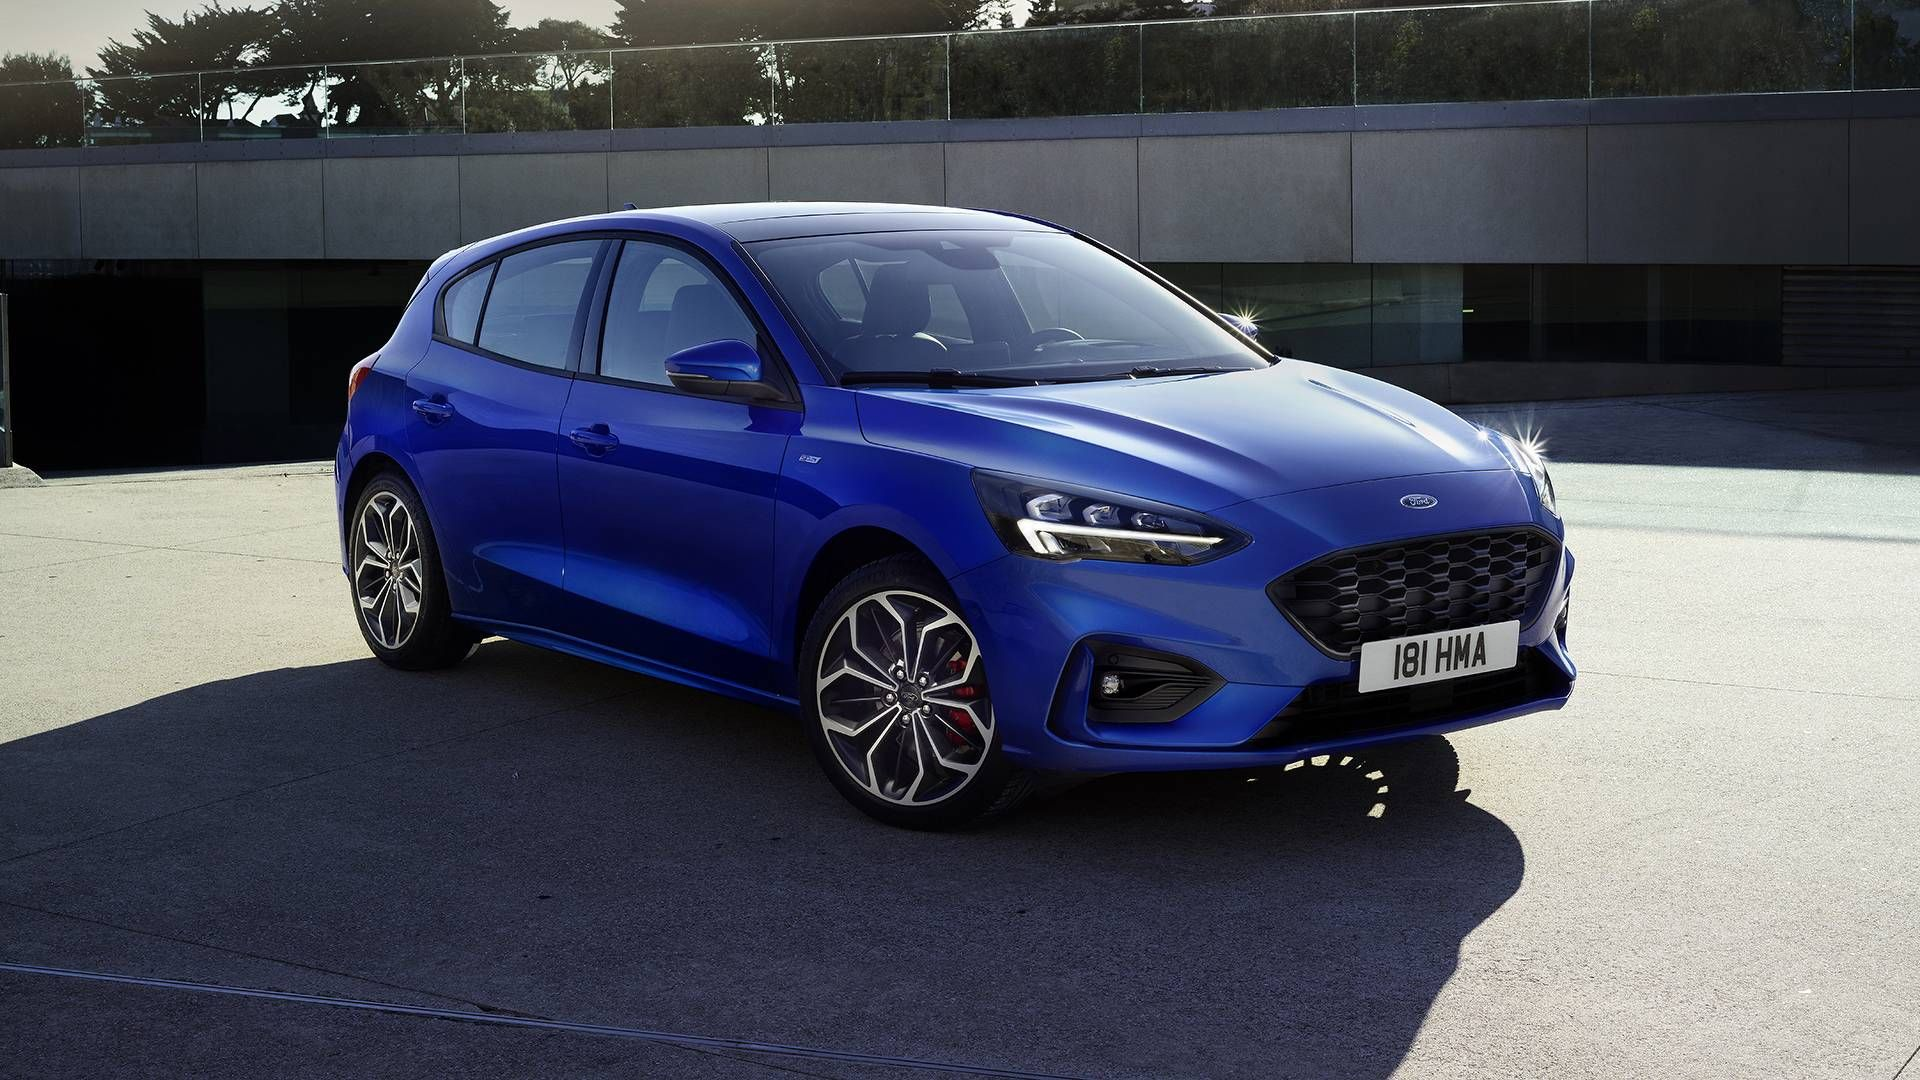 2019 Ford Focus St Line Extensively Detailed In Lengthy Video In 2020